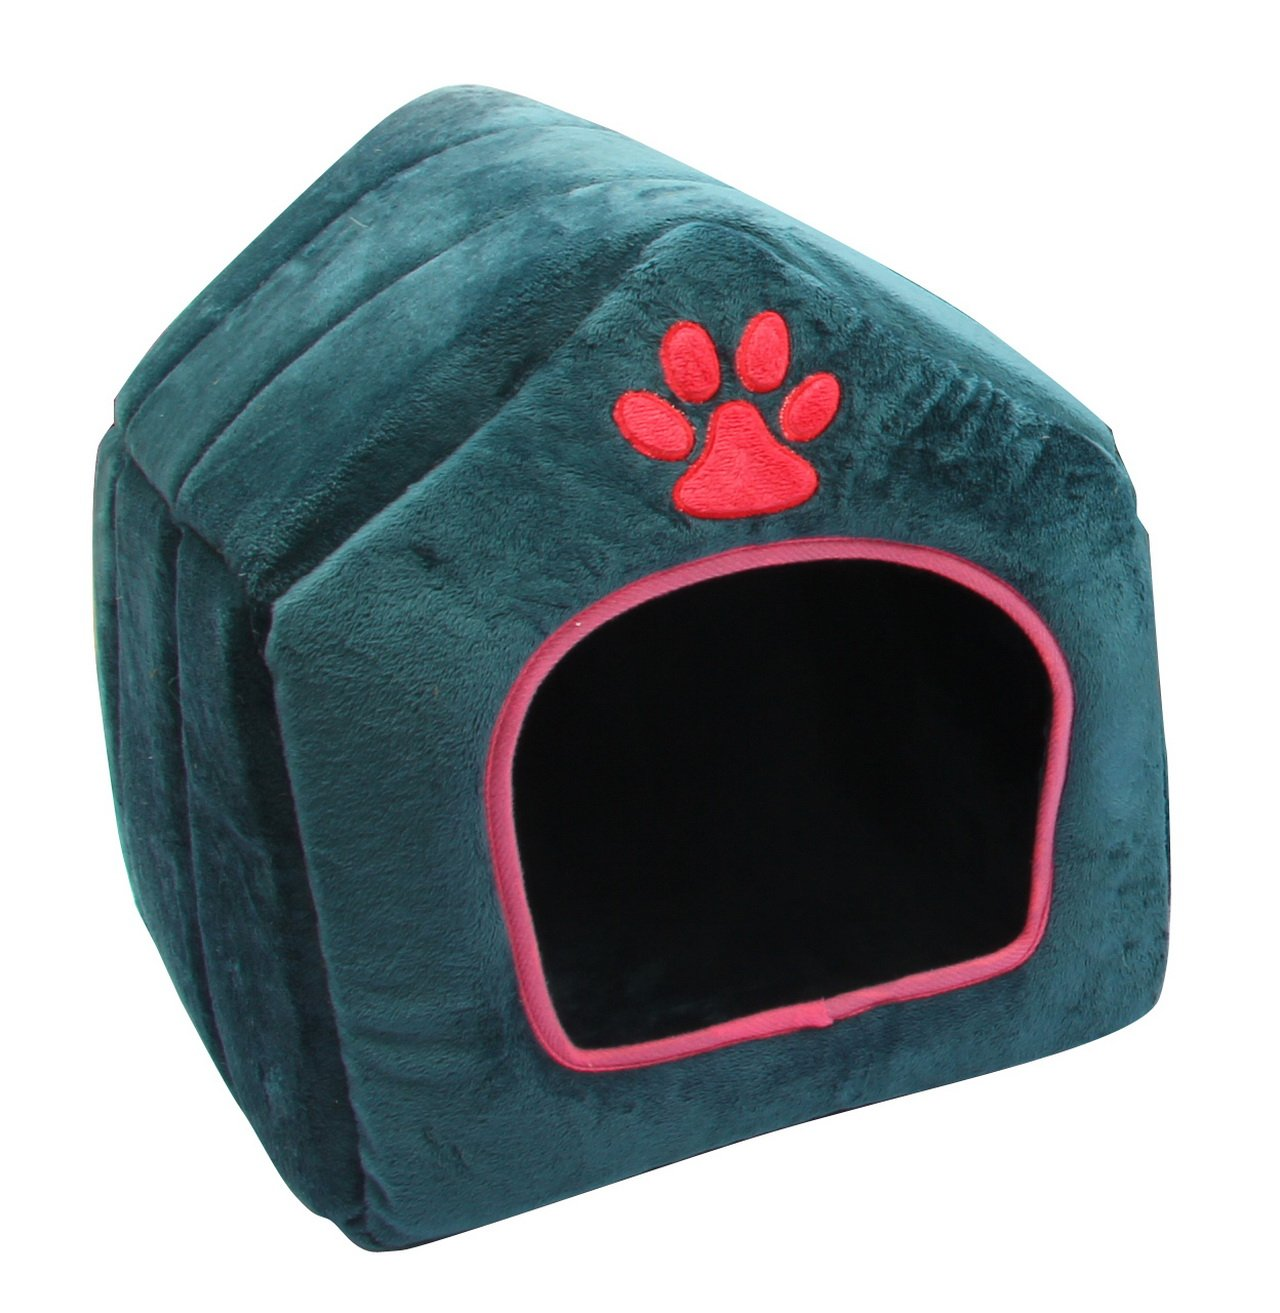 Purrrfect life PL14095-C Super Enclosed House-Shaped Pet Bed